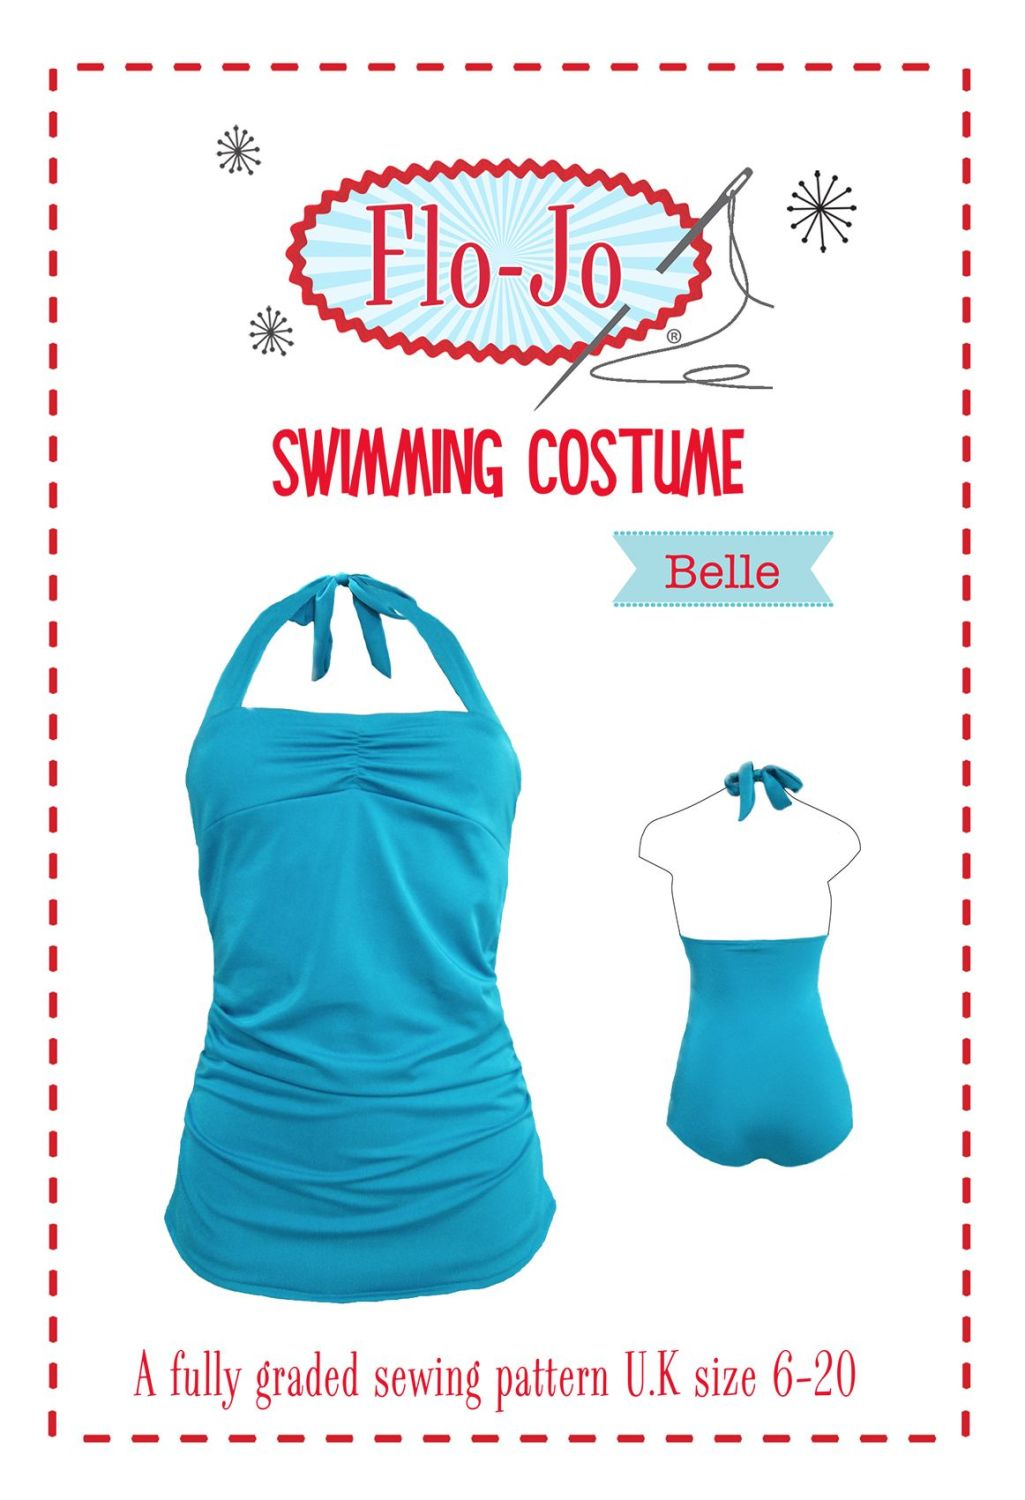 Belle Swimming Costume